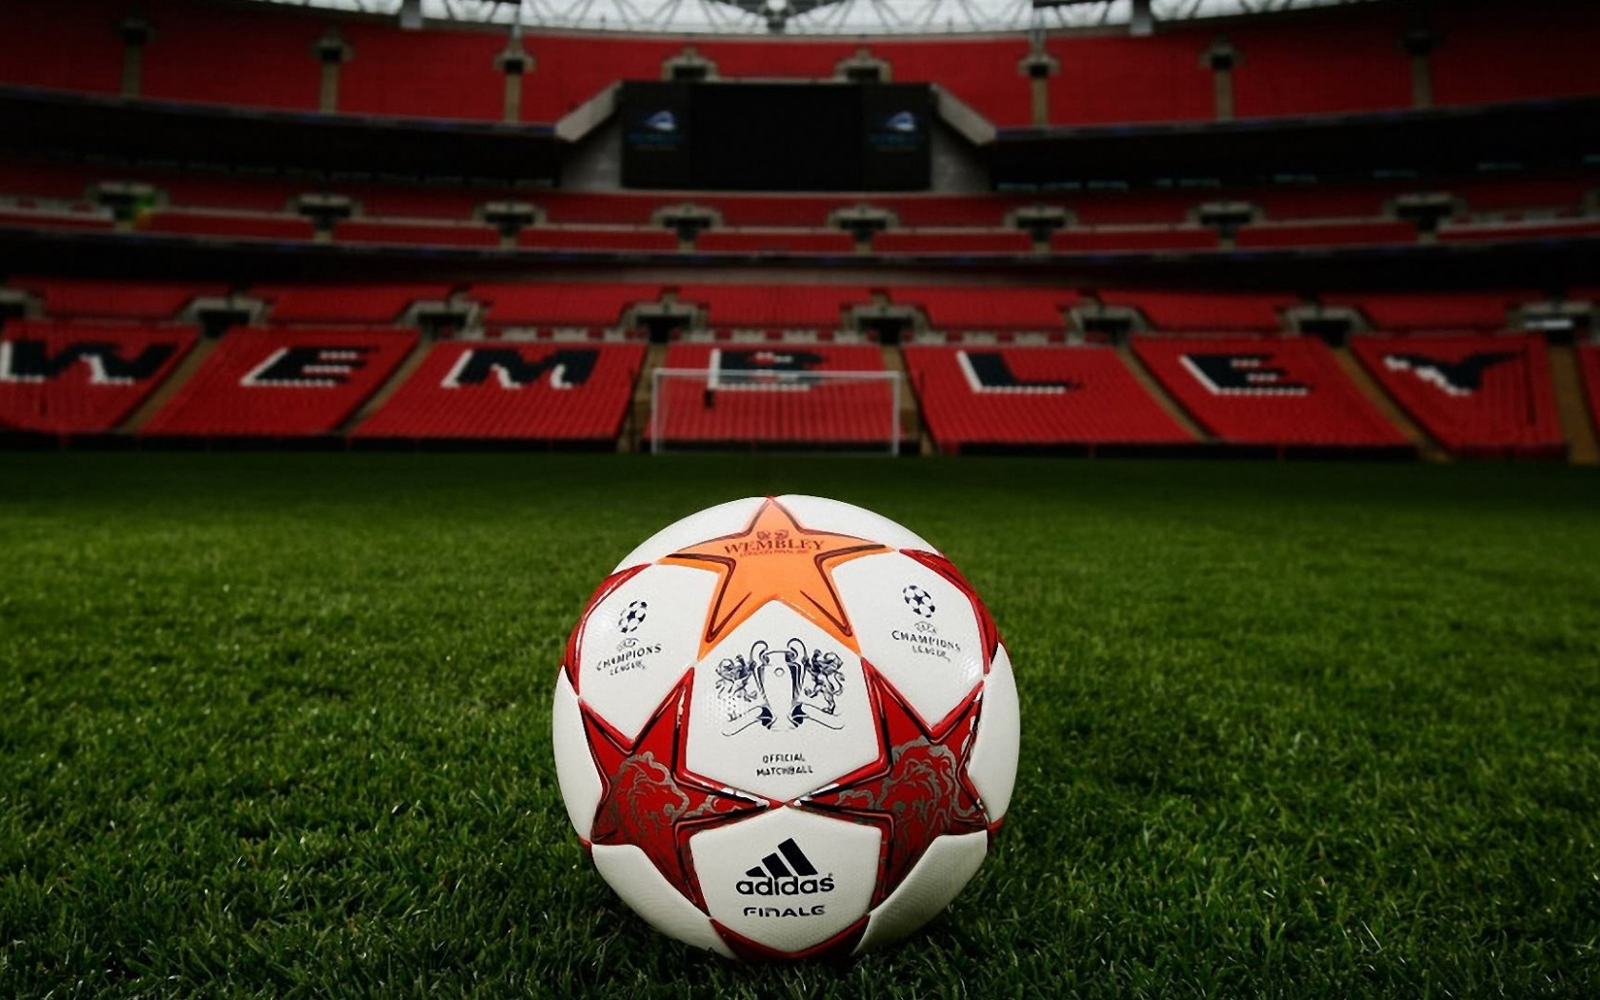 Wembley Stadium 2013 UEFA Champions League Final London Hd